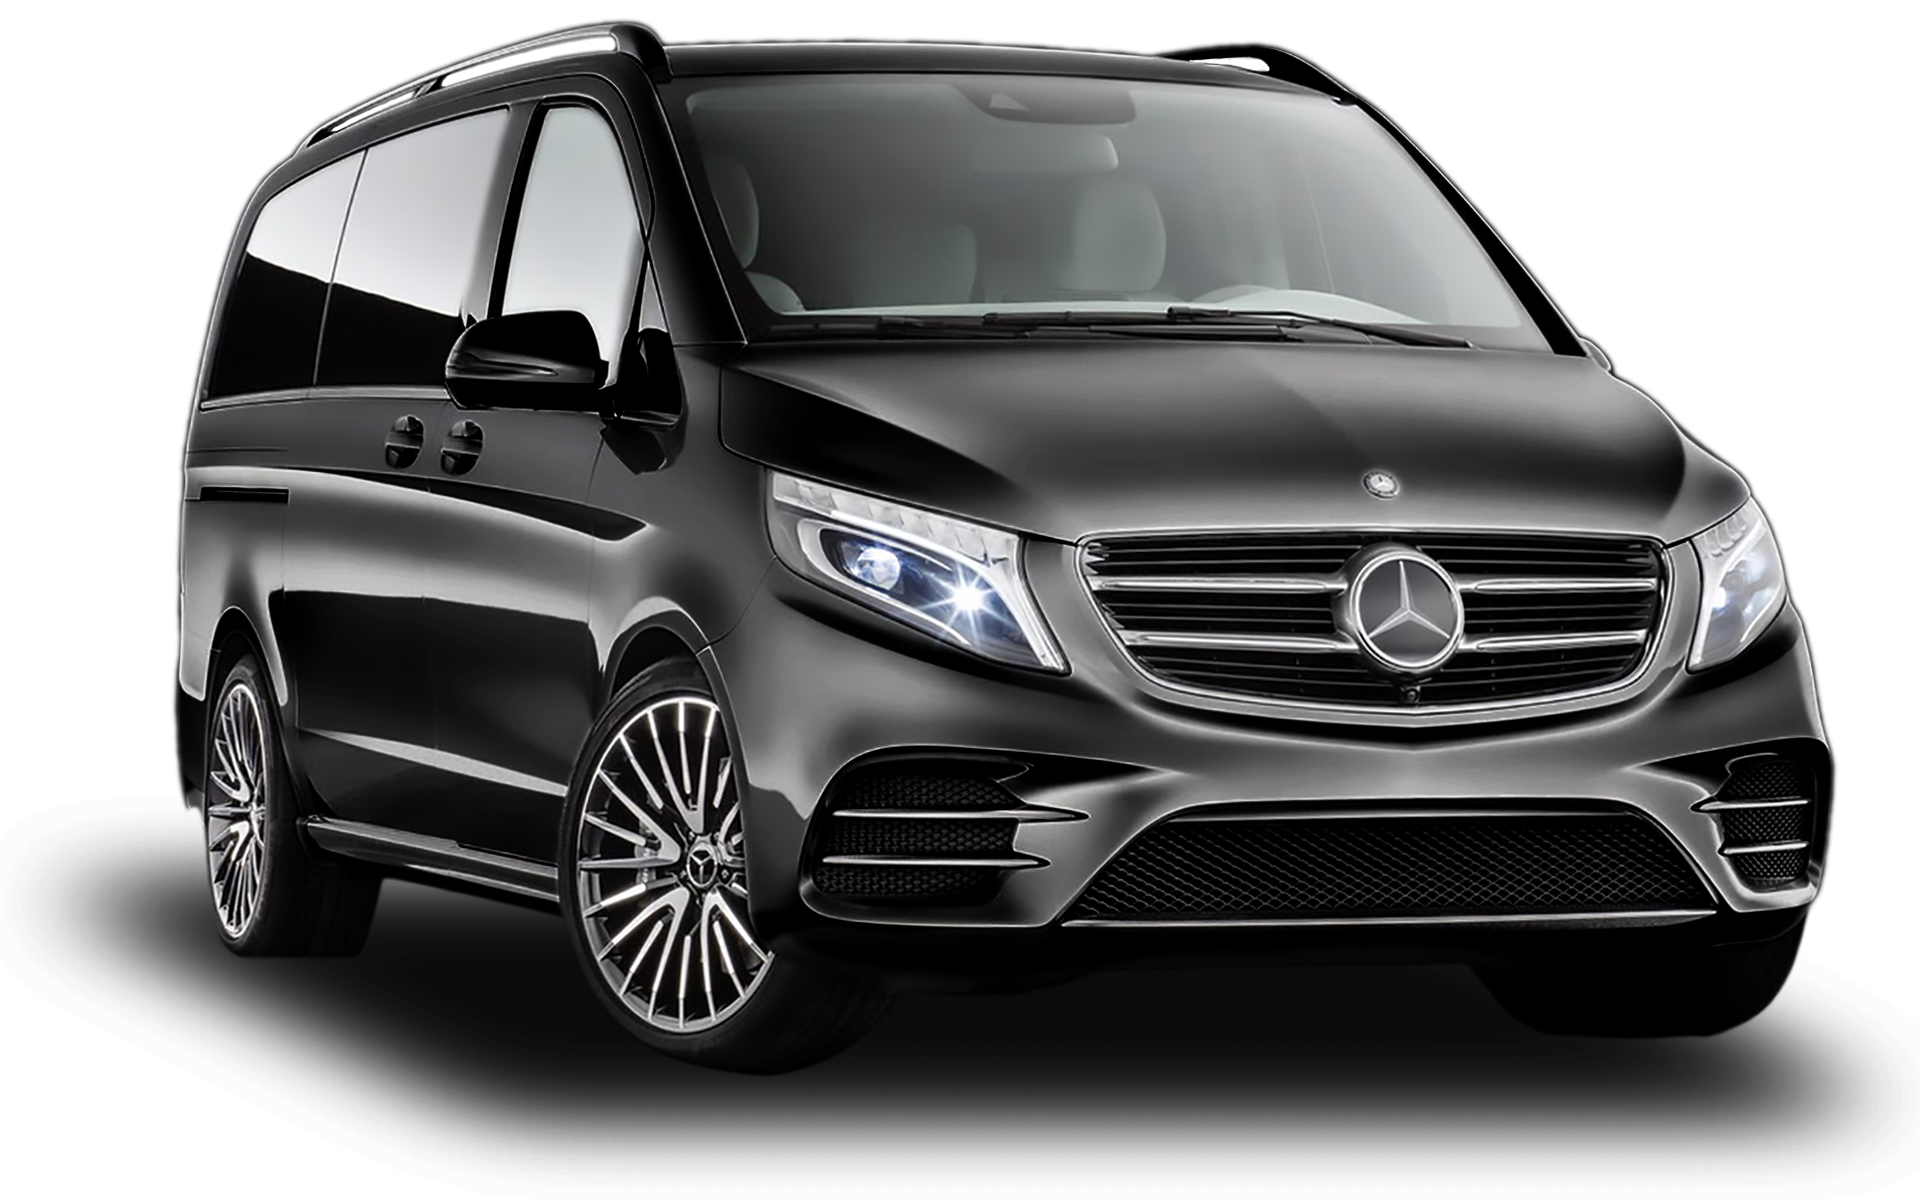 milan chauffeur service with mercedes v class. Black Bedroom Furniture Sets. Home Design Ideas